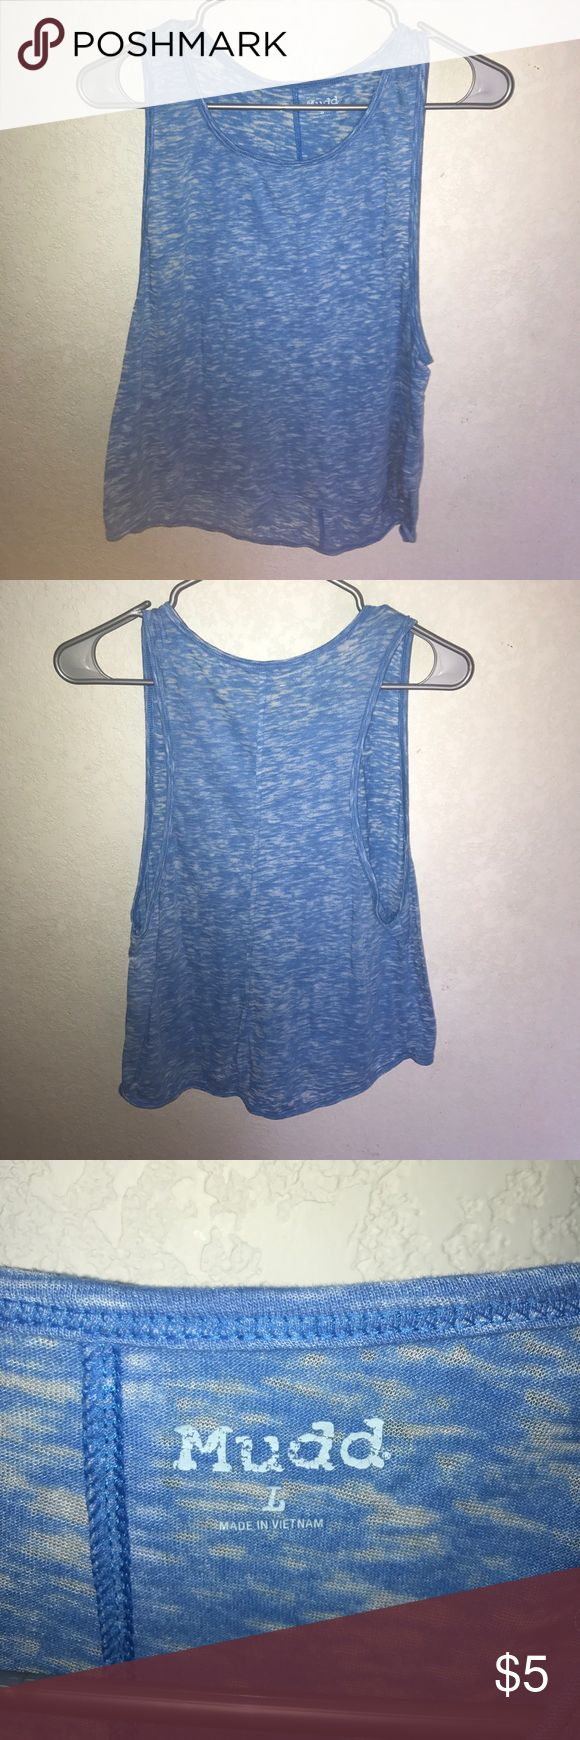 Blue tank top This is a lighter blue tank top. Barely worn. It is in great condition. Mudd Tops Tank Tops